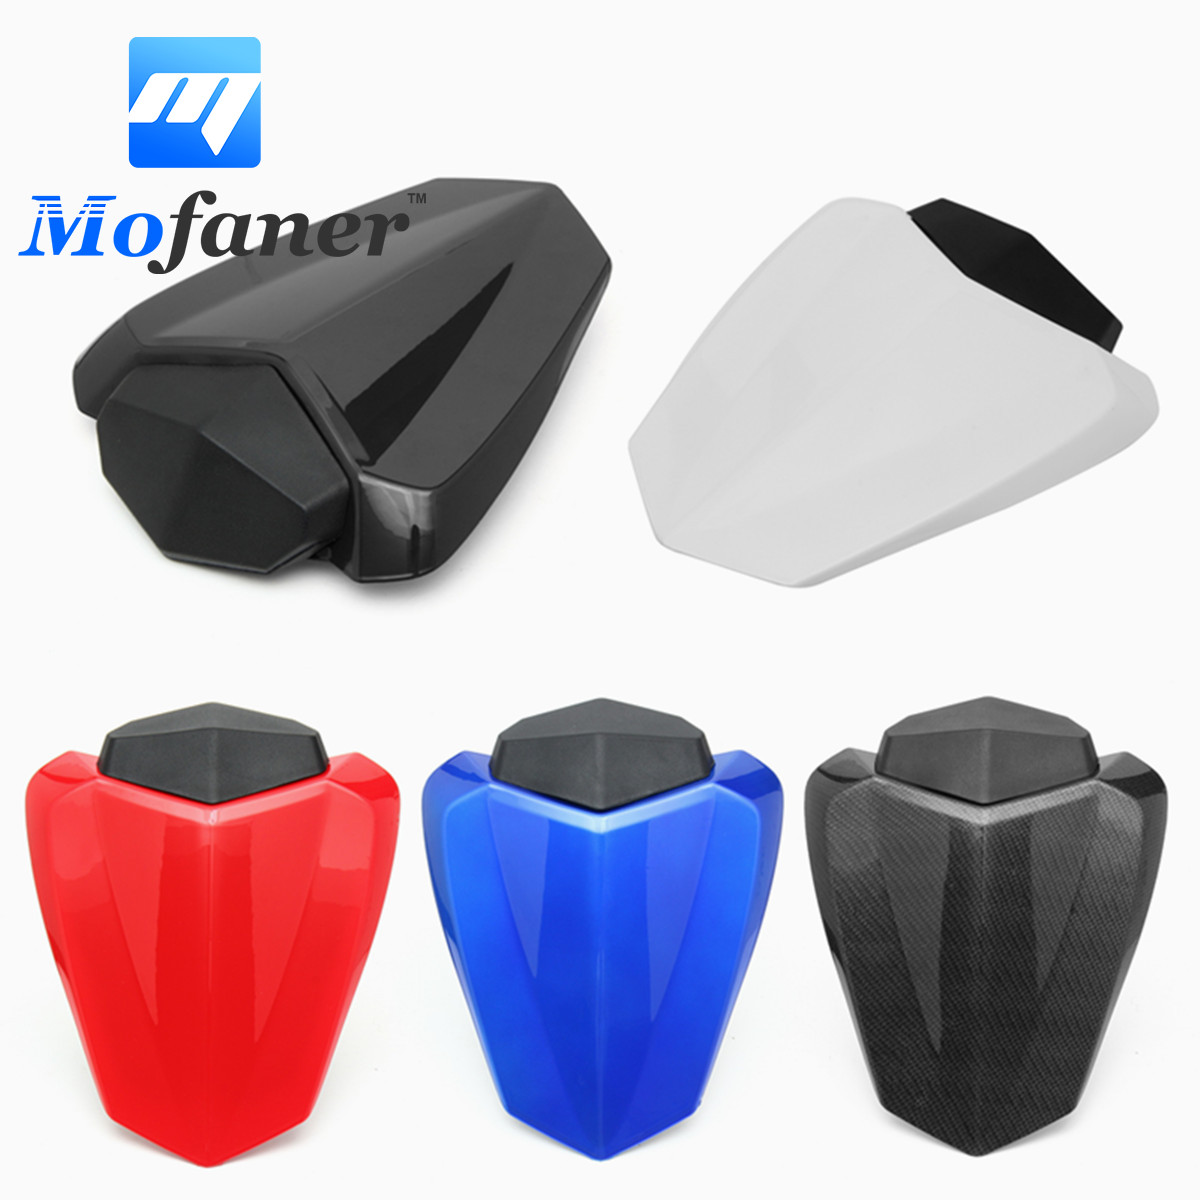 Mofaner Motorcycle ABS Plastic Rear Seat Cover Cowl For Yamaha YZF R1 2009-2014 BS1 for ktm 390 duke motorcycle leather pillon passenger rear seat black color